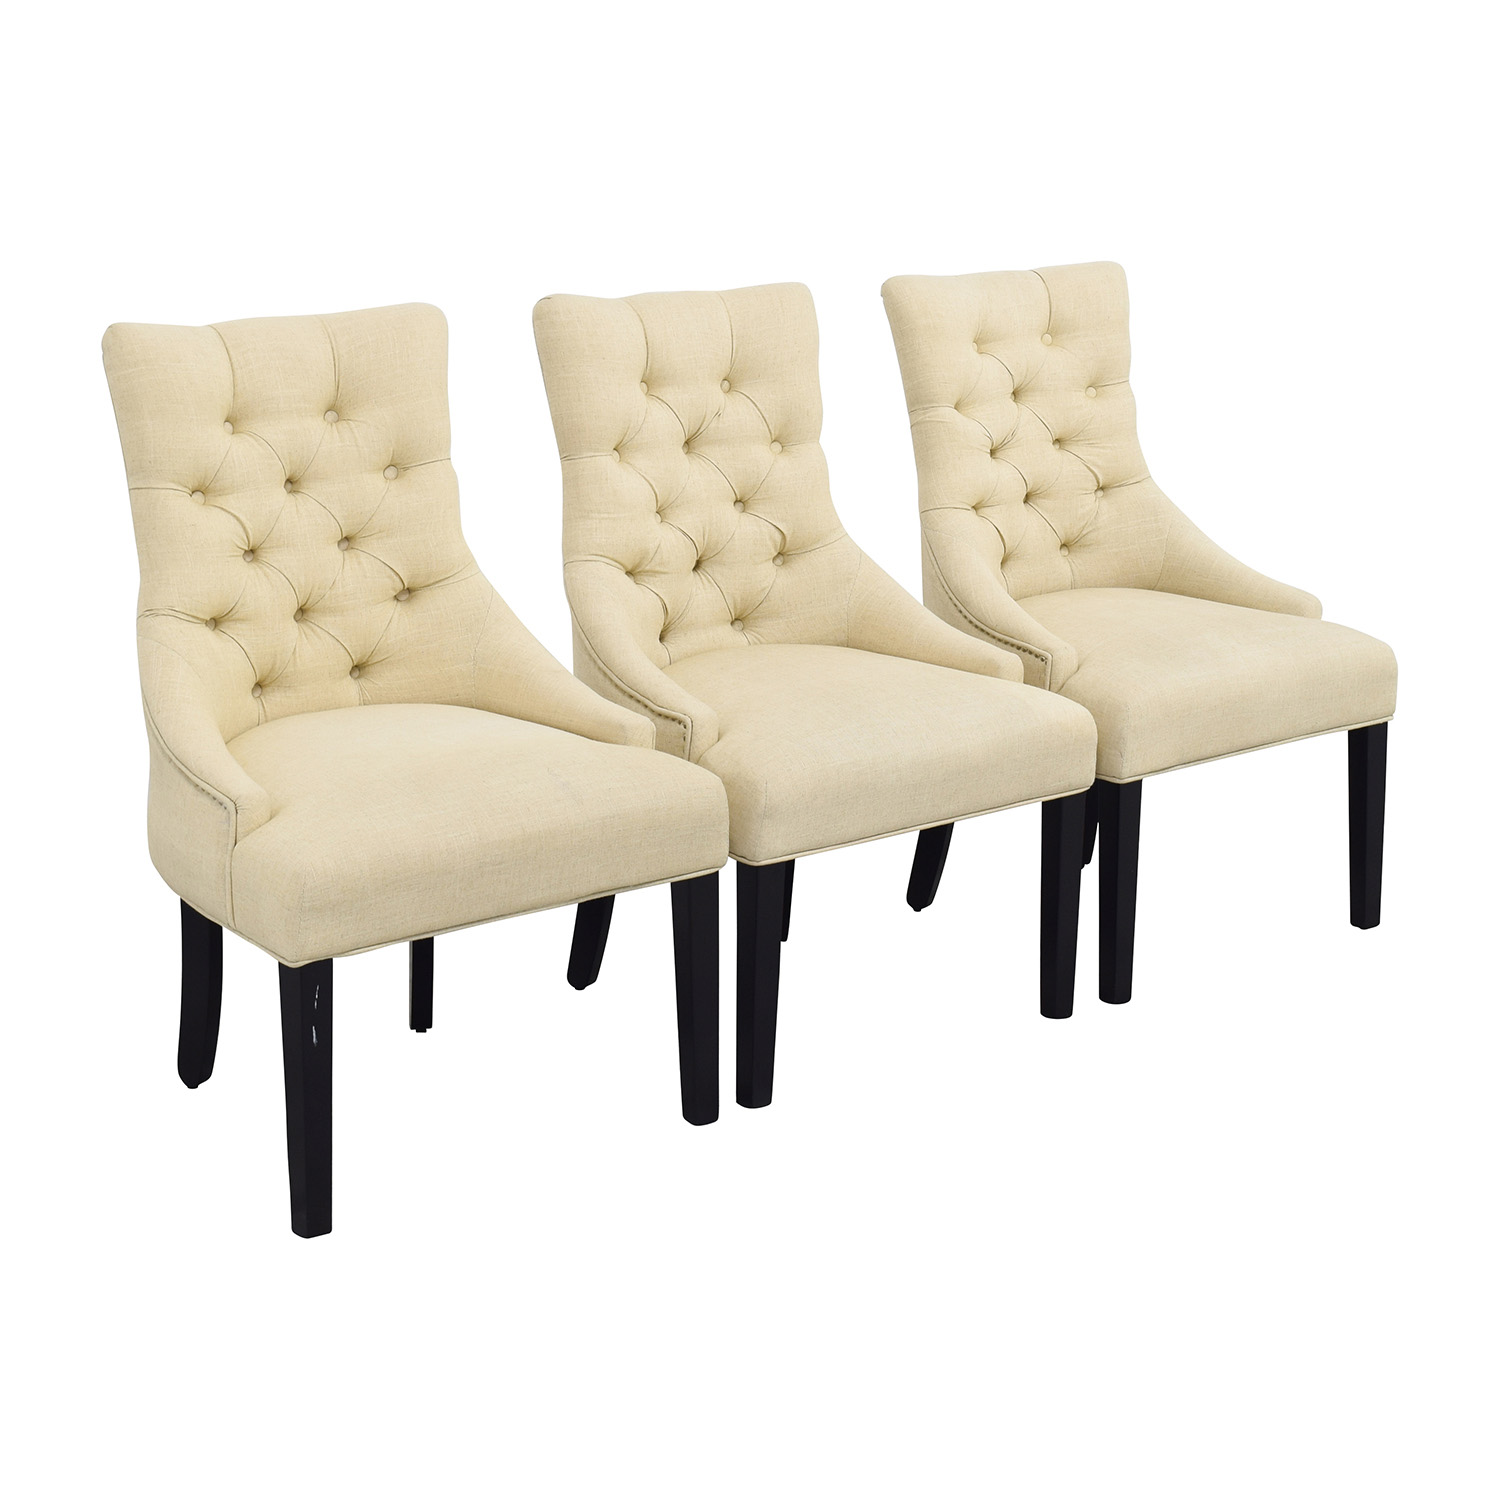 Used Wingback Chairs Beautiful Wing Back Chairs Rtty1 Rtty1